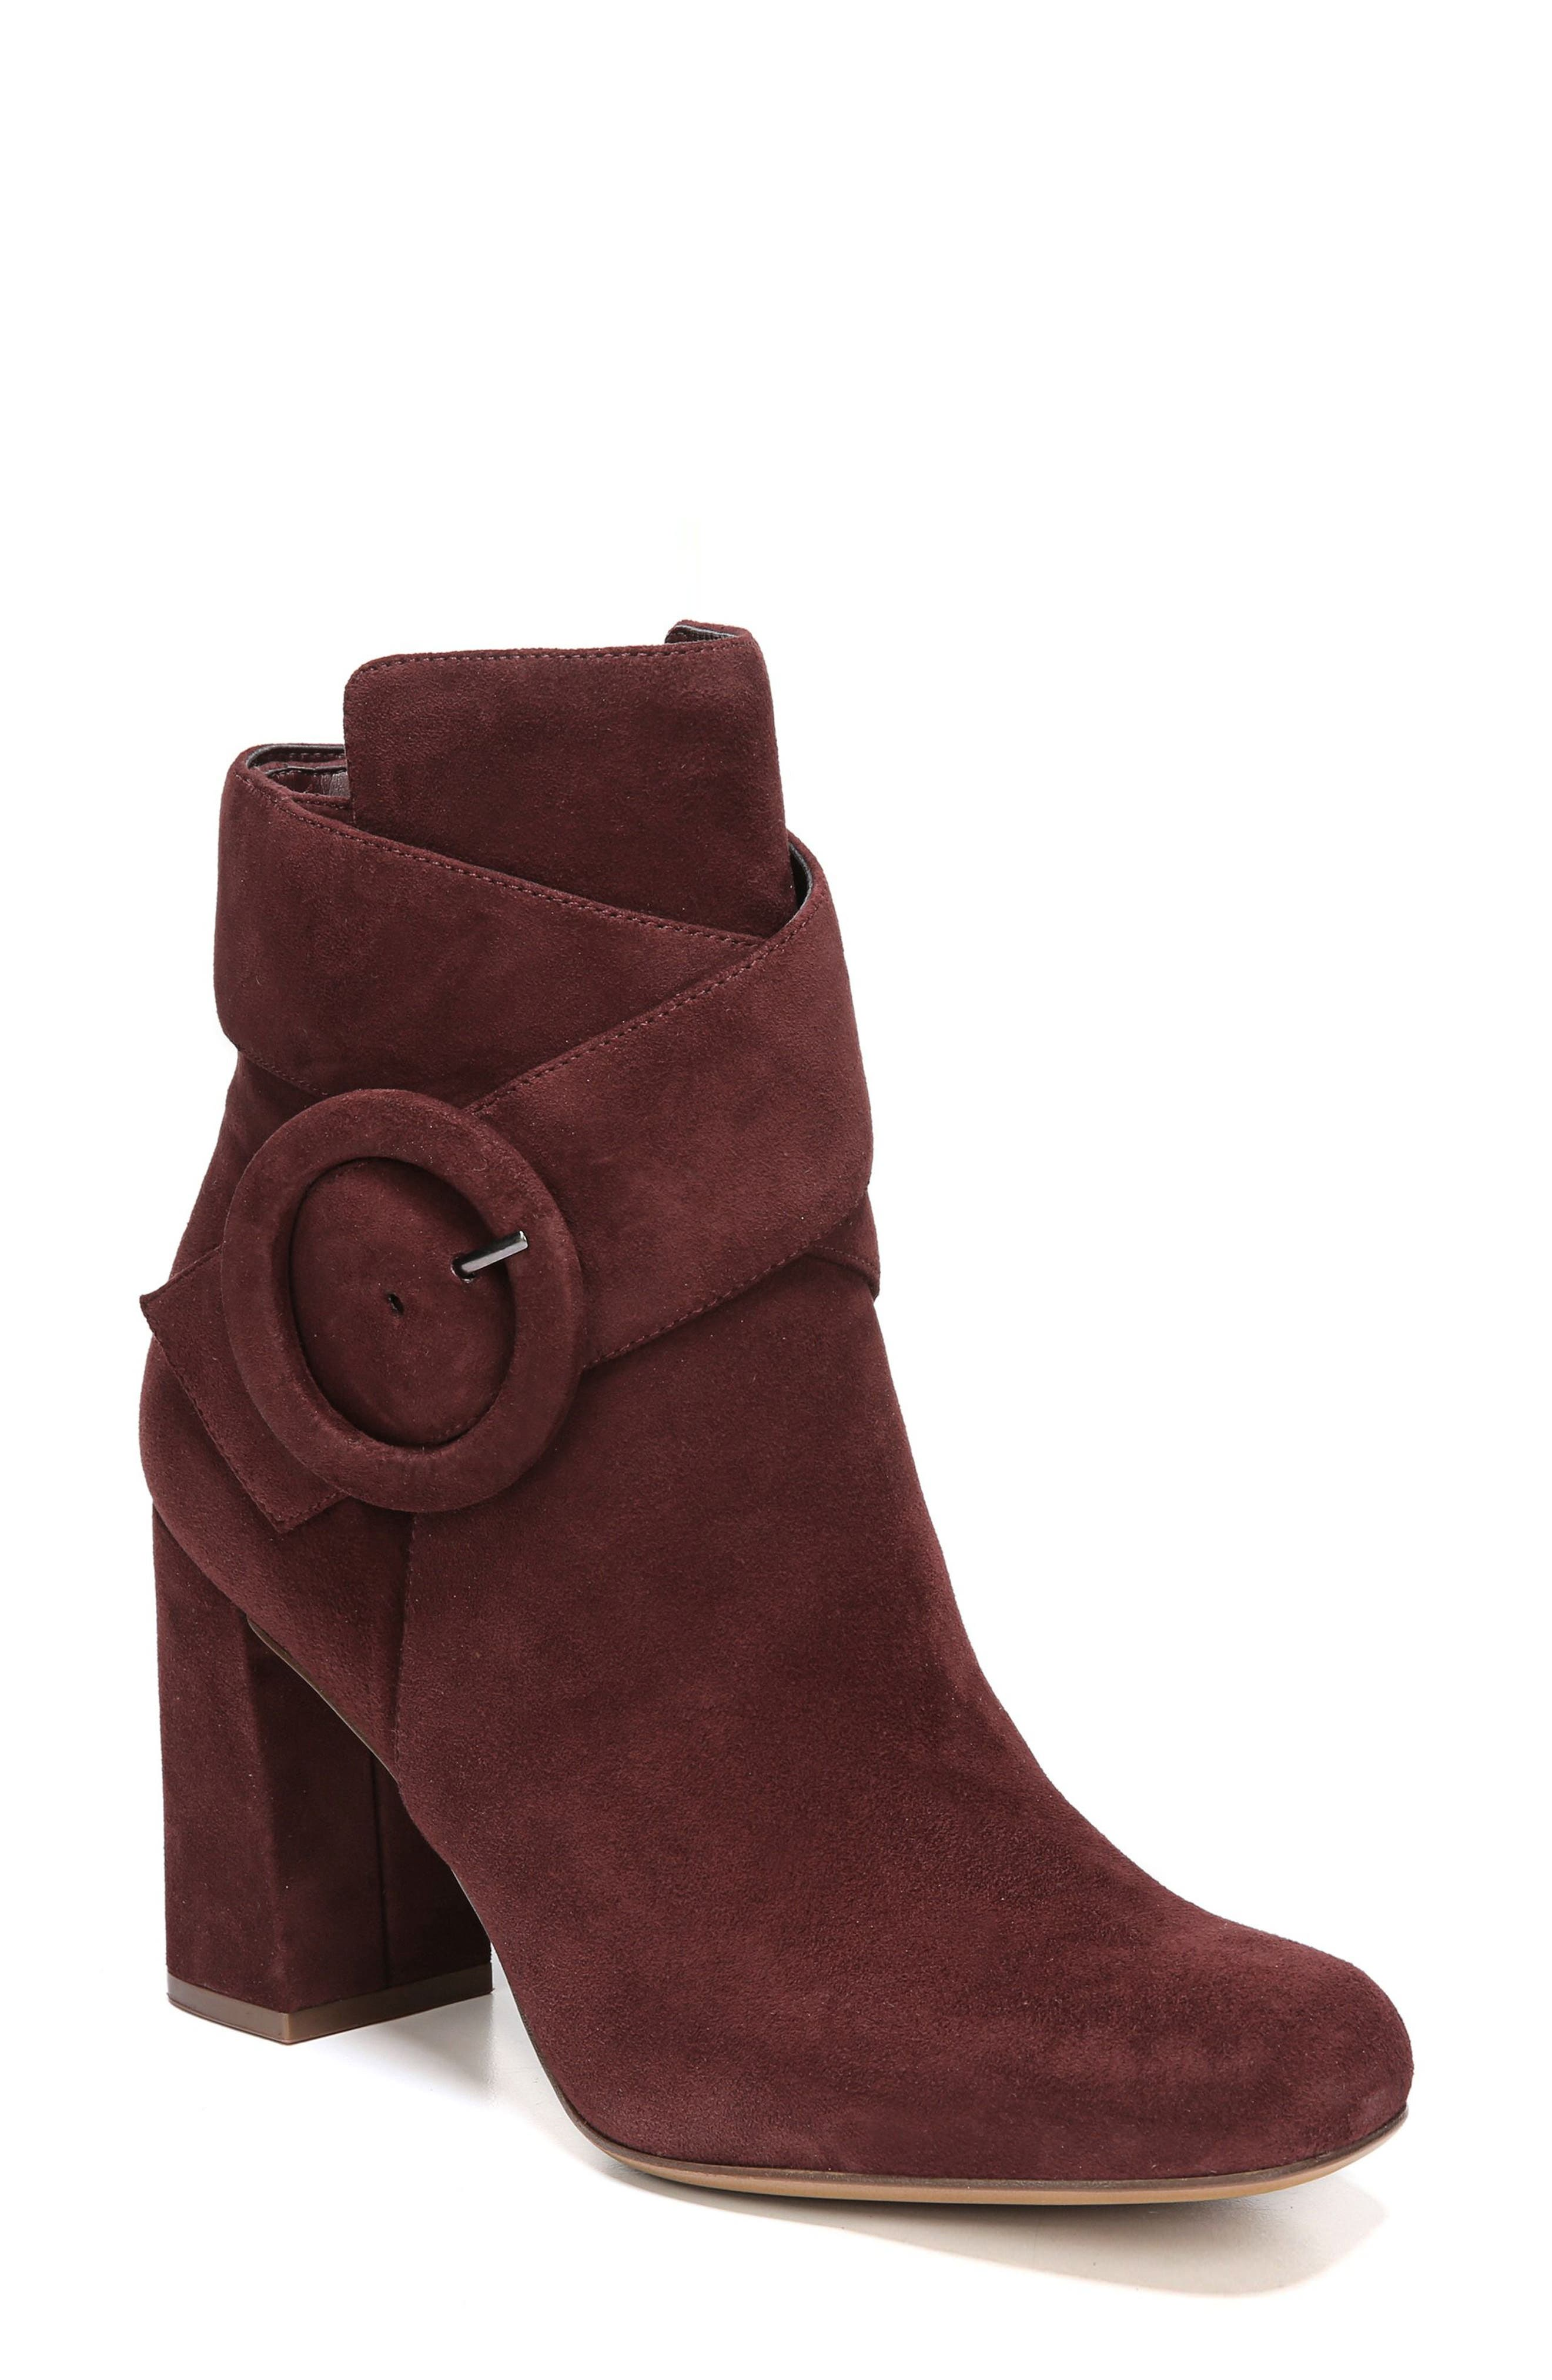 Nautralizer Rae Bootie,                         Main,                         color, Bordo Leather